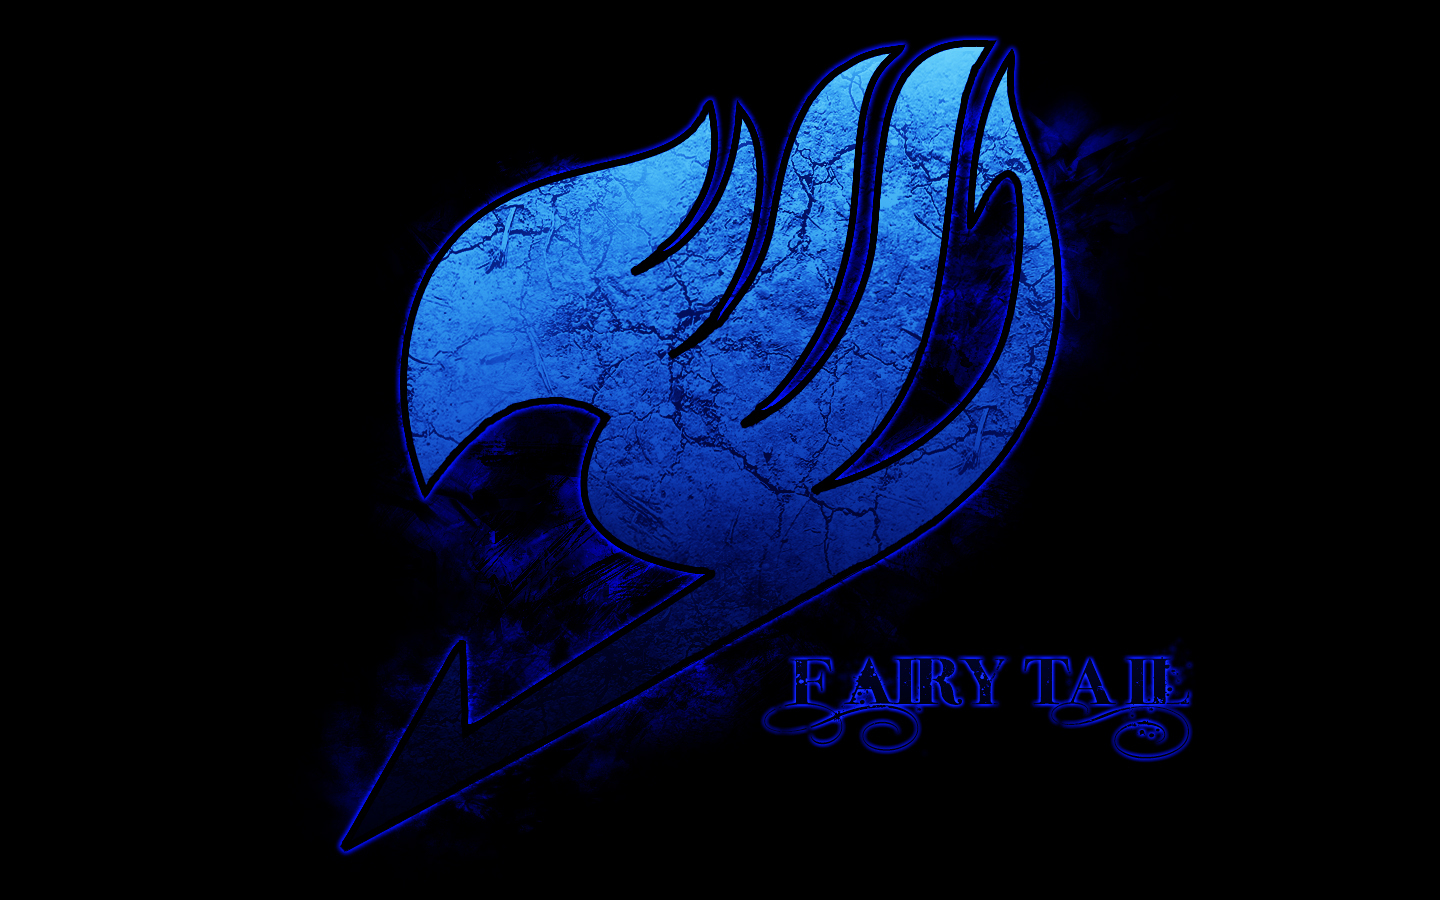 Fairy Tail images Blue FT Logo wallpaper photos 9950163 1440x900